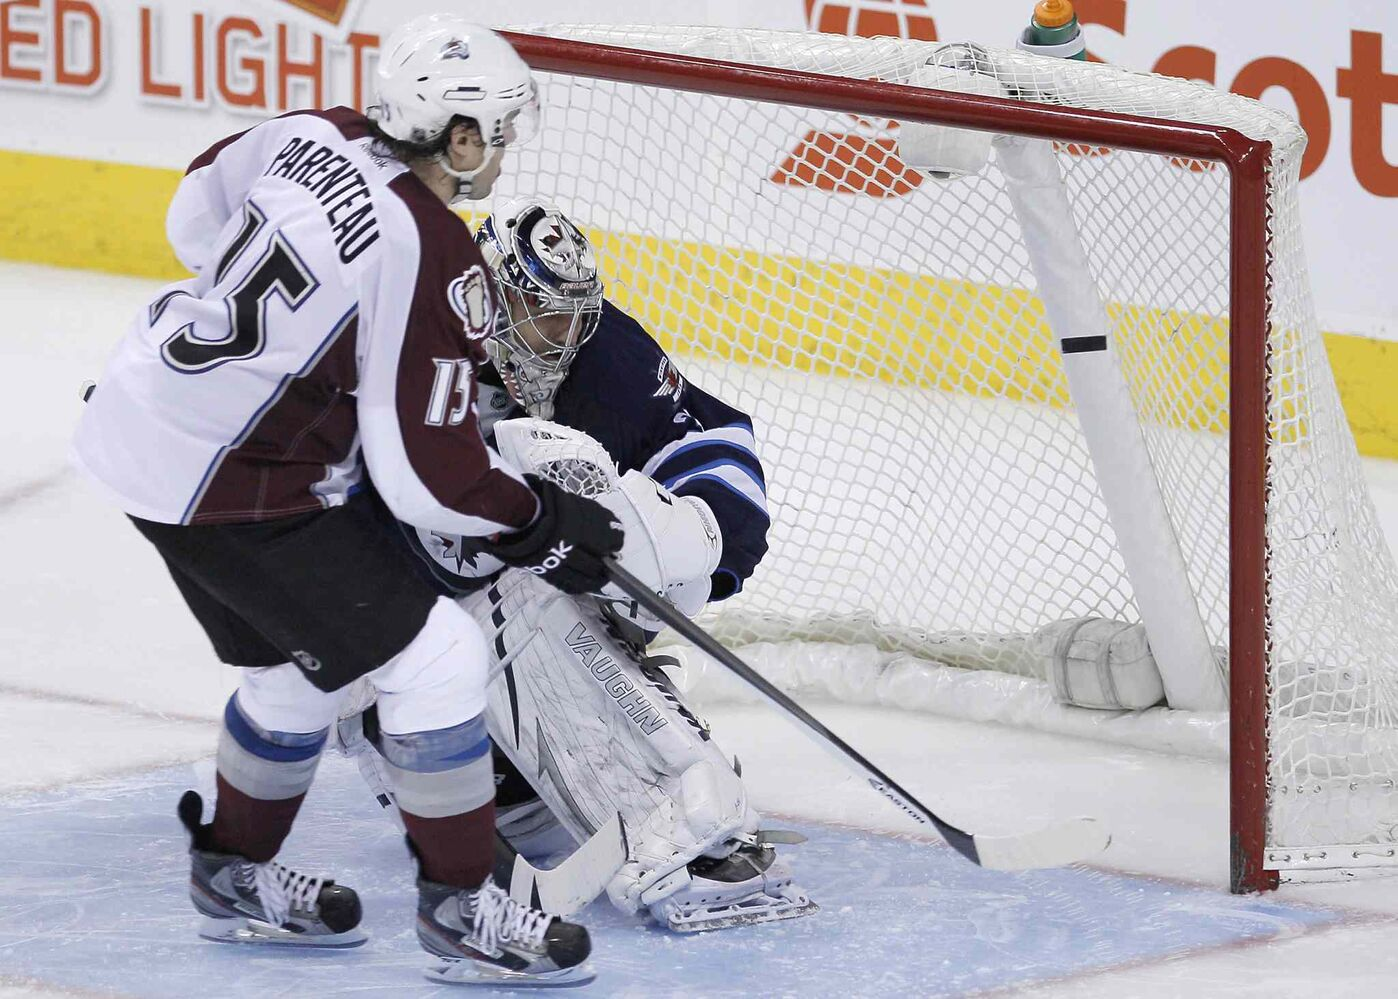 P.A. Parenteau (left) of the Colorado Avalanche scores the game-winning shootout goal shot on Winnipeg Jets goaltender Ondrej Pavelec. (JOHN WOODS / THE CANADIAN PRESS)